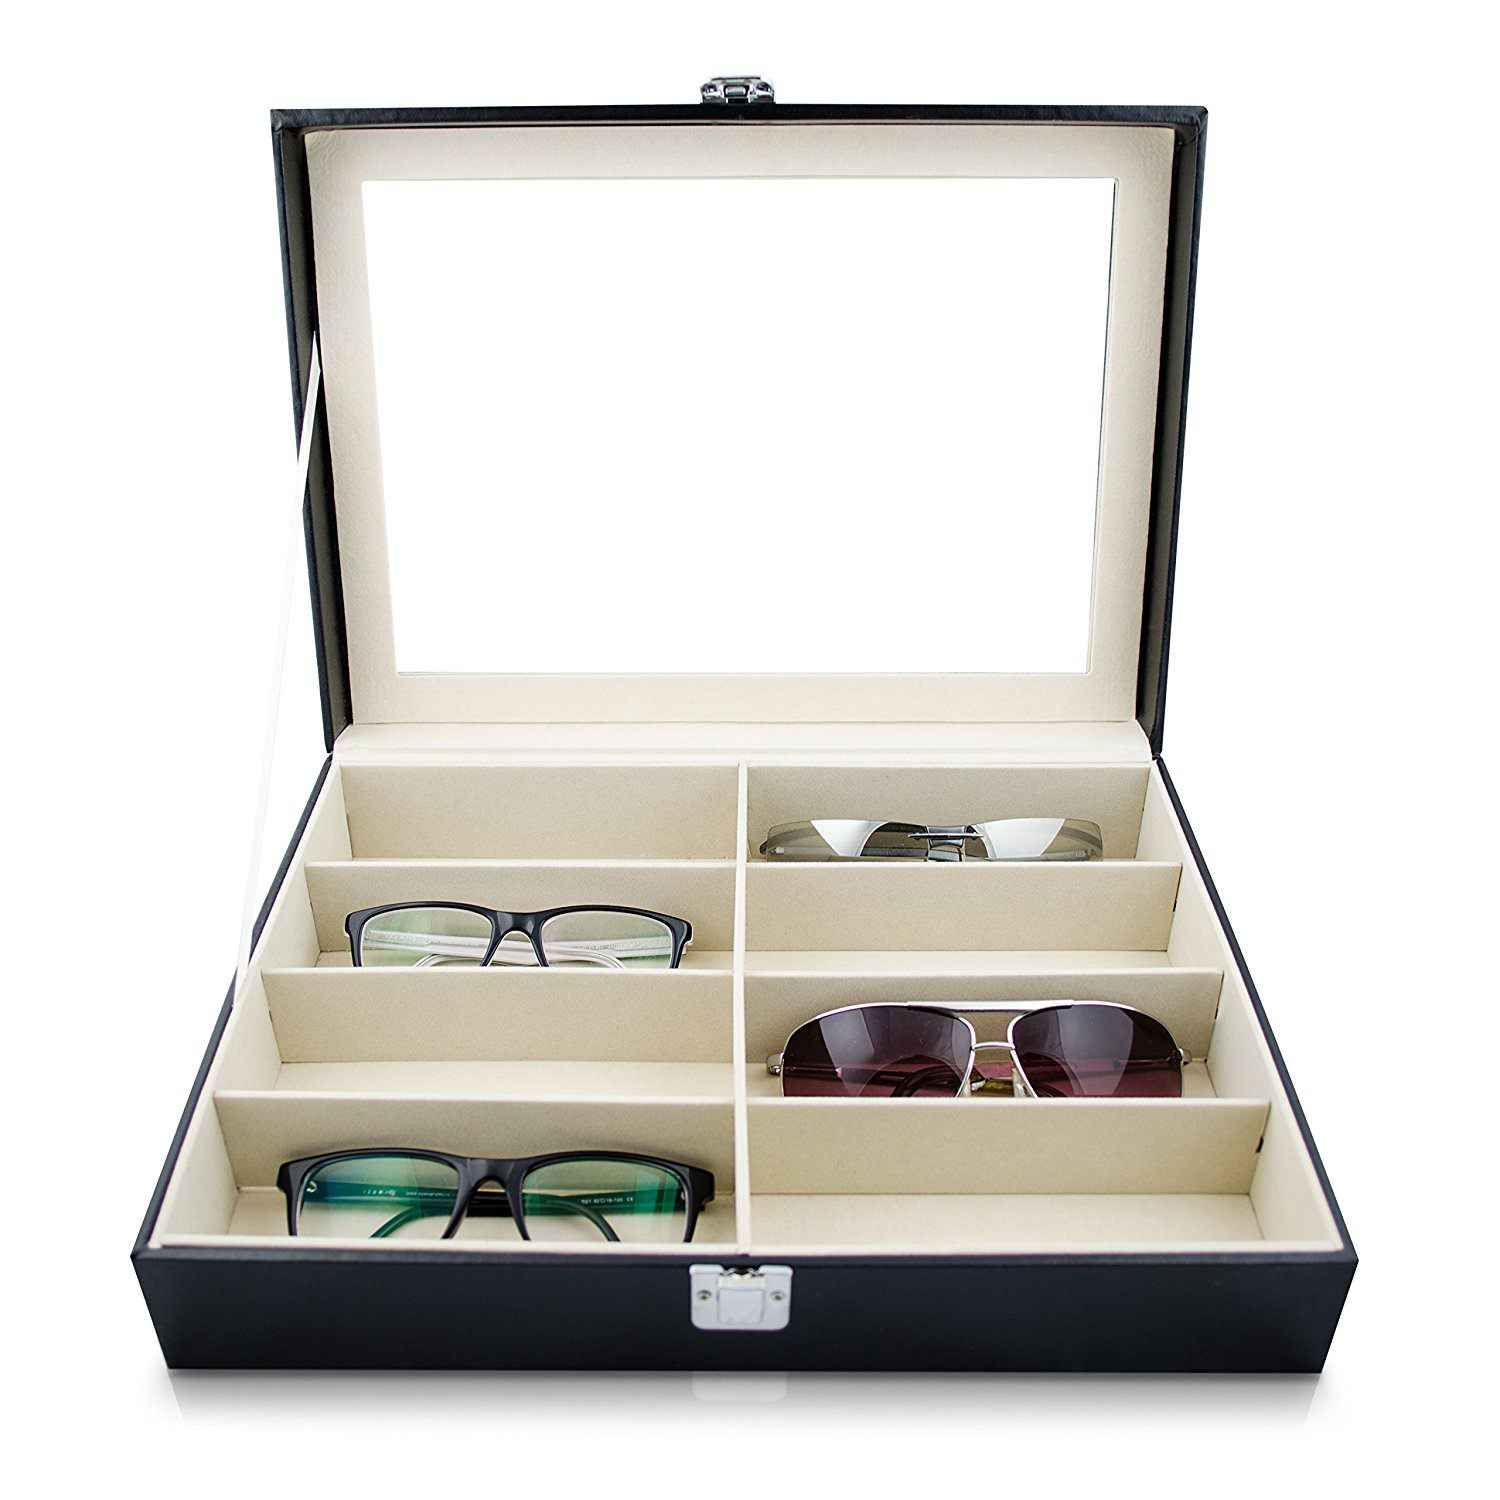 fee548793b HOT Eyeglass Sunglass Storage Box Imitation Leather Glasses Display Case  Storage Organizer Collector 8 Slot